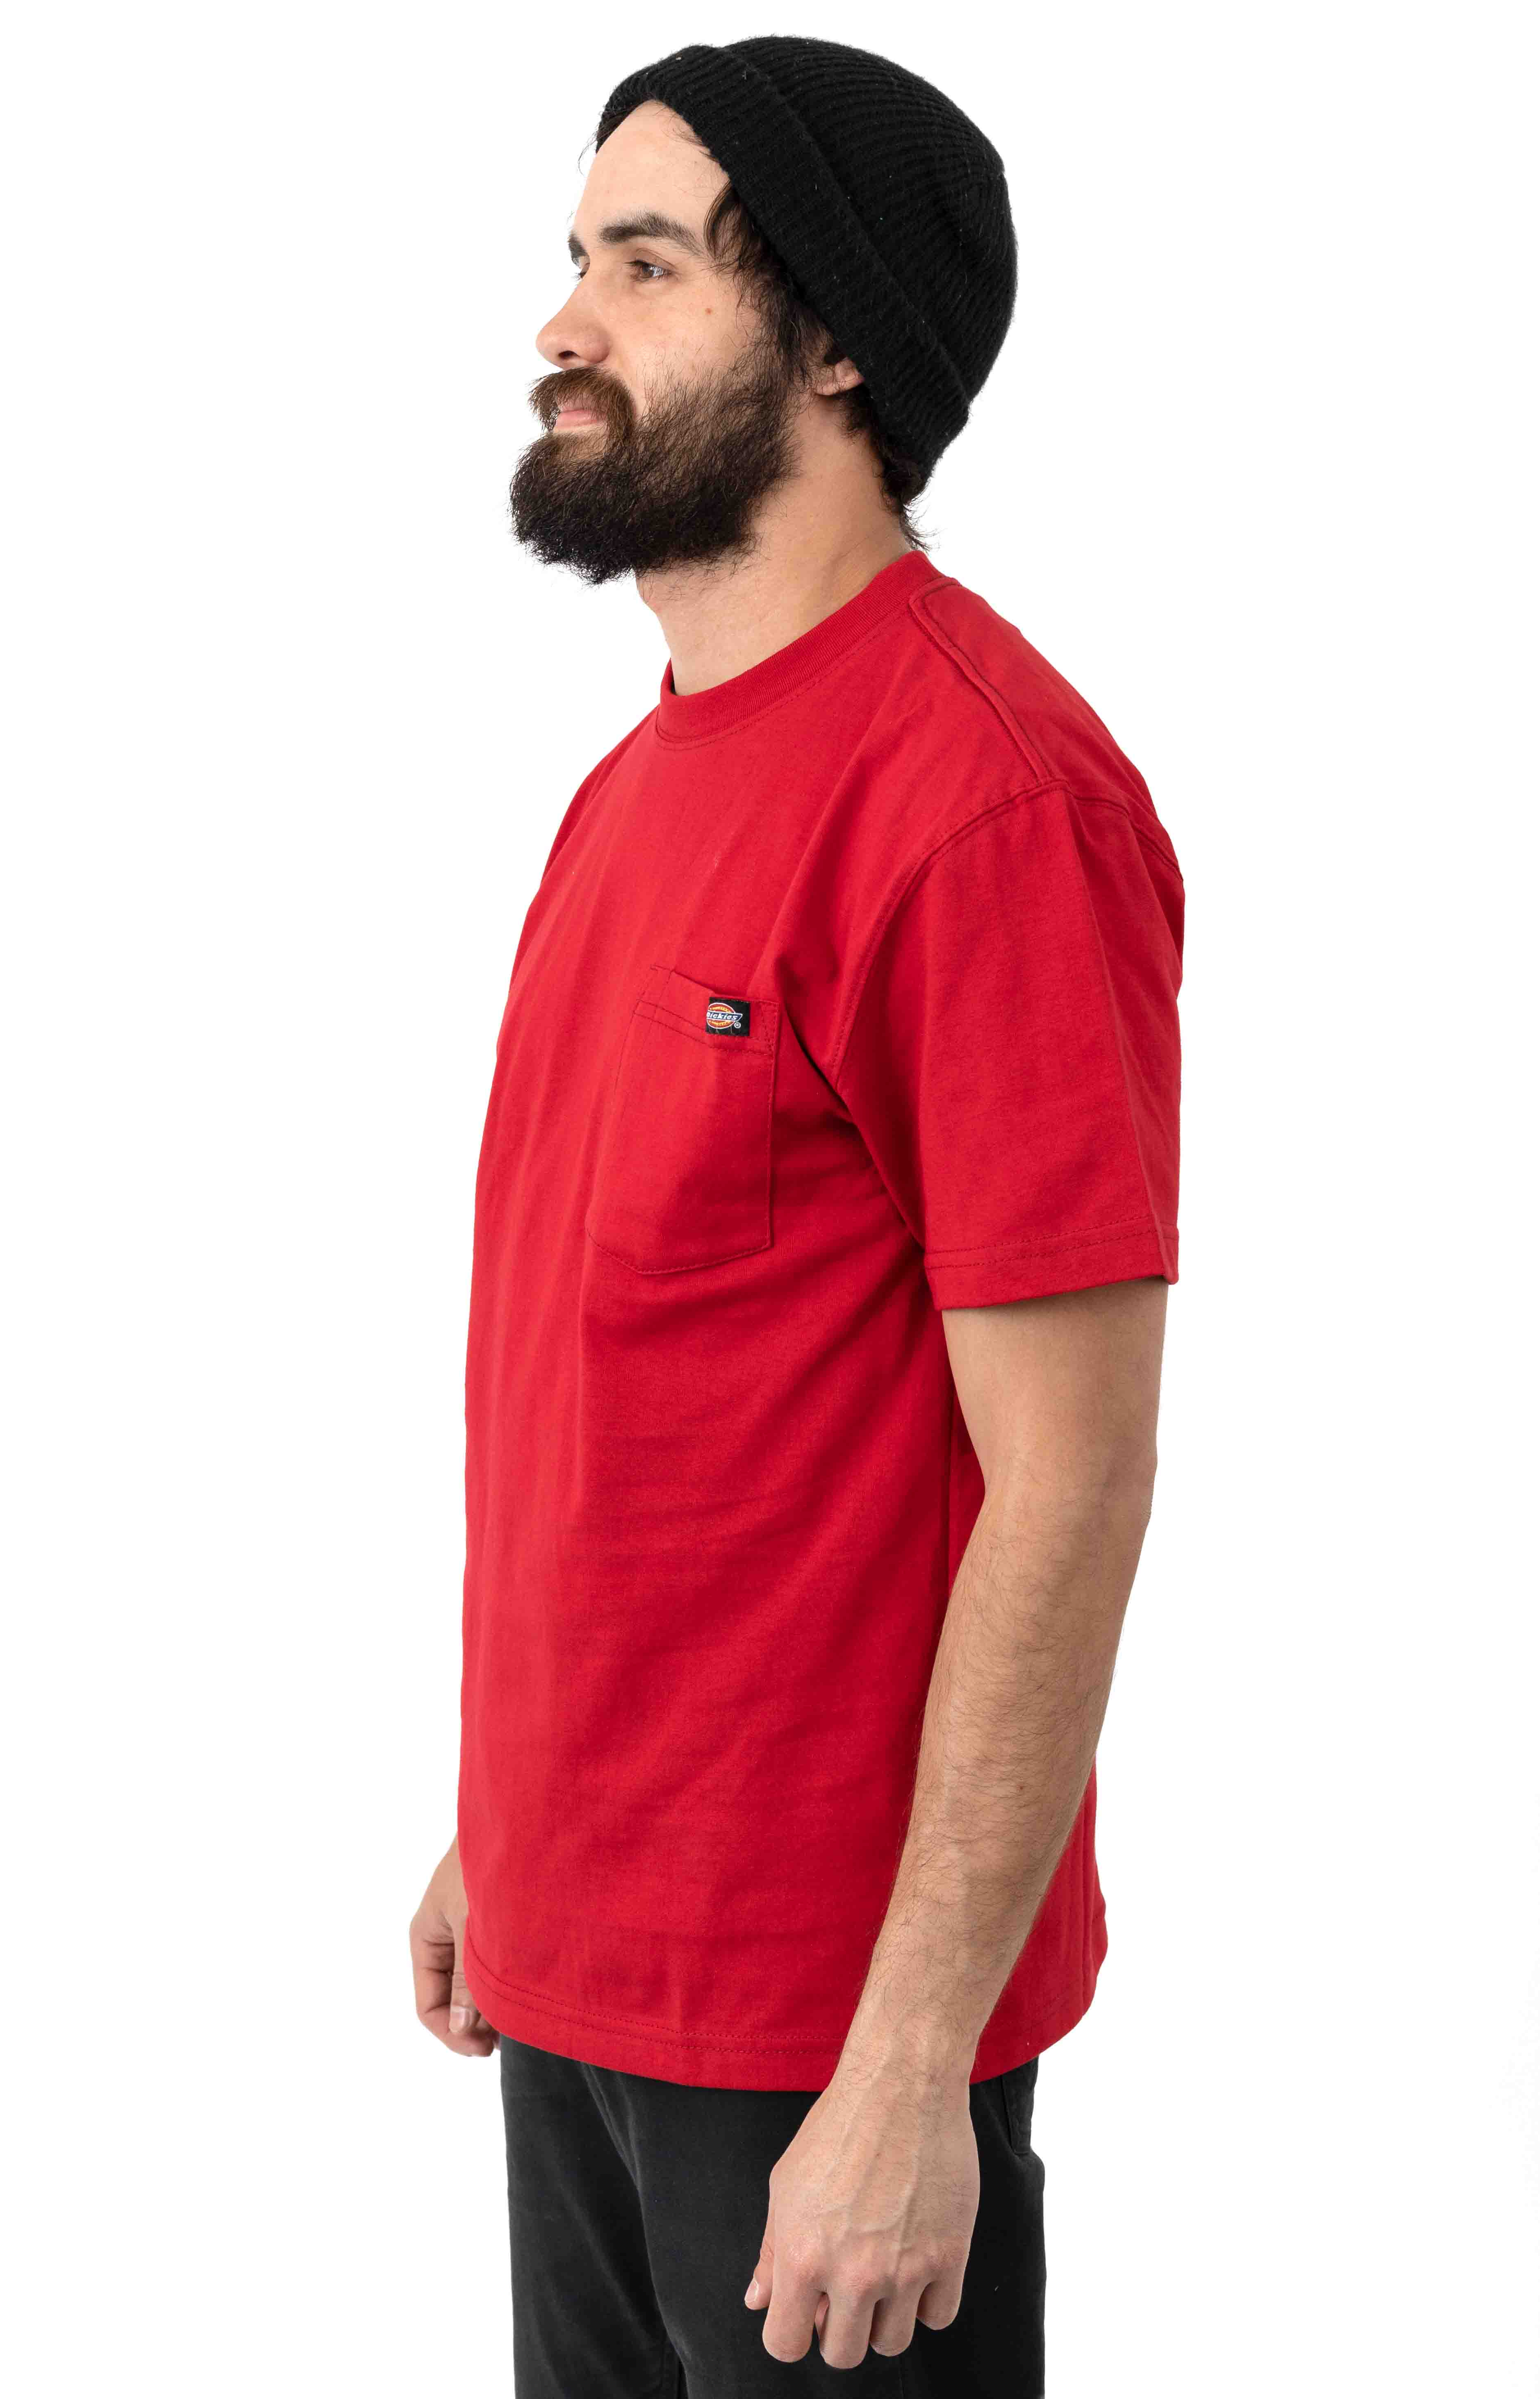 (WS450ER) S/S Heavyweight T-Shirt - English Red 2